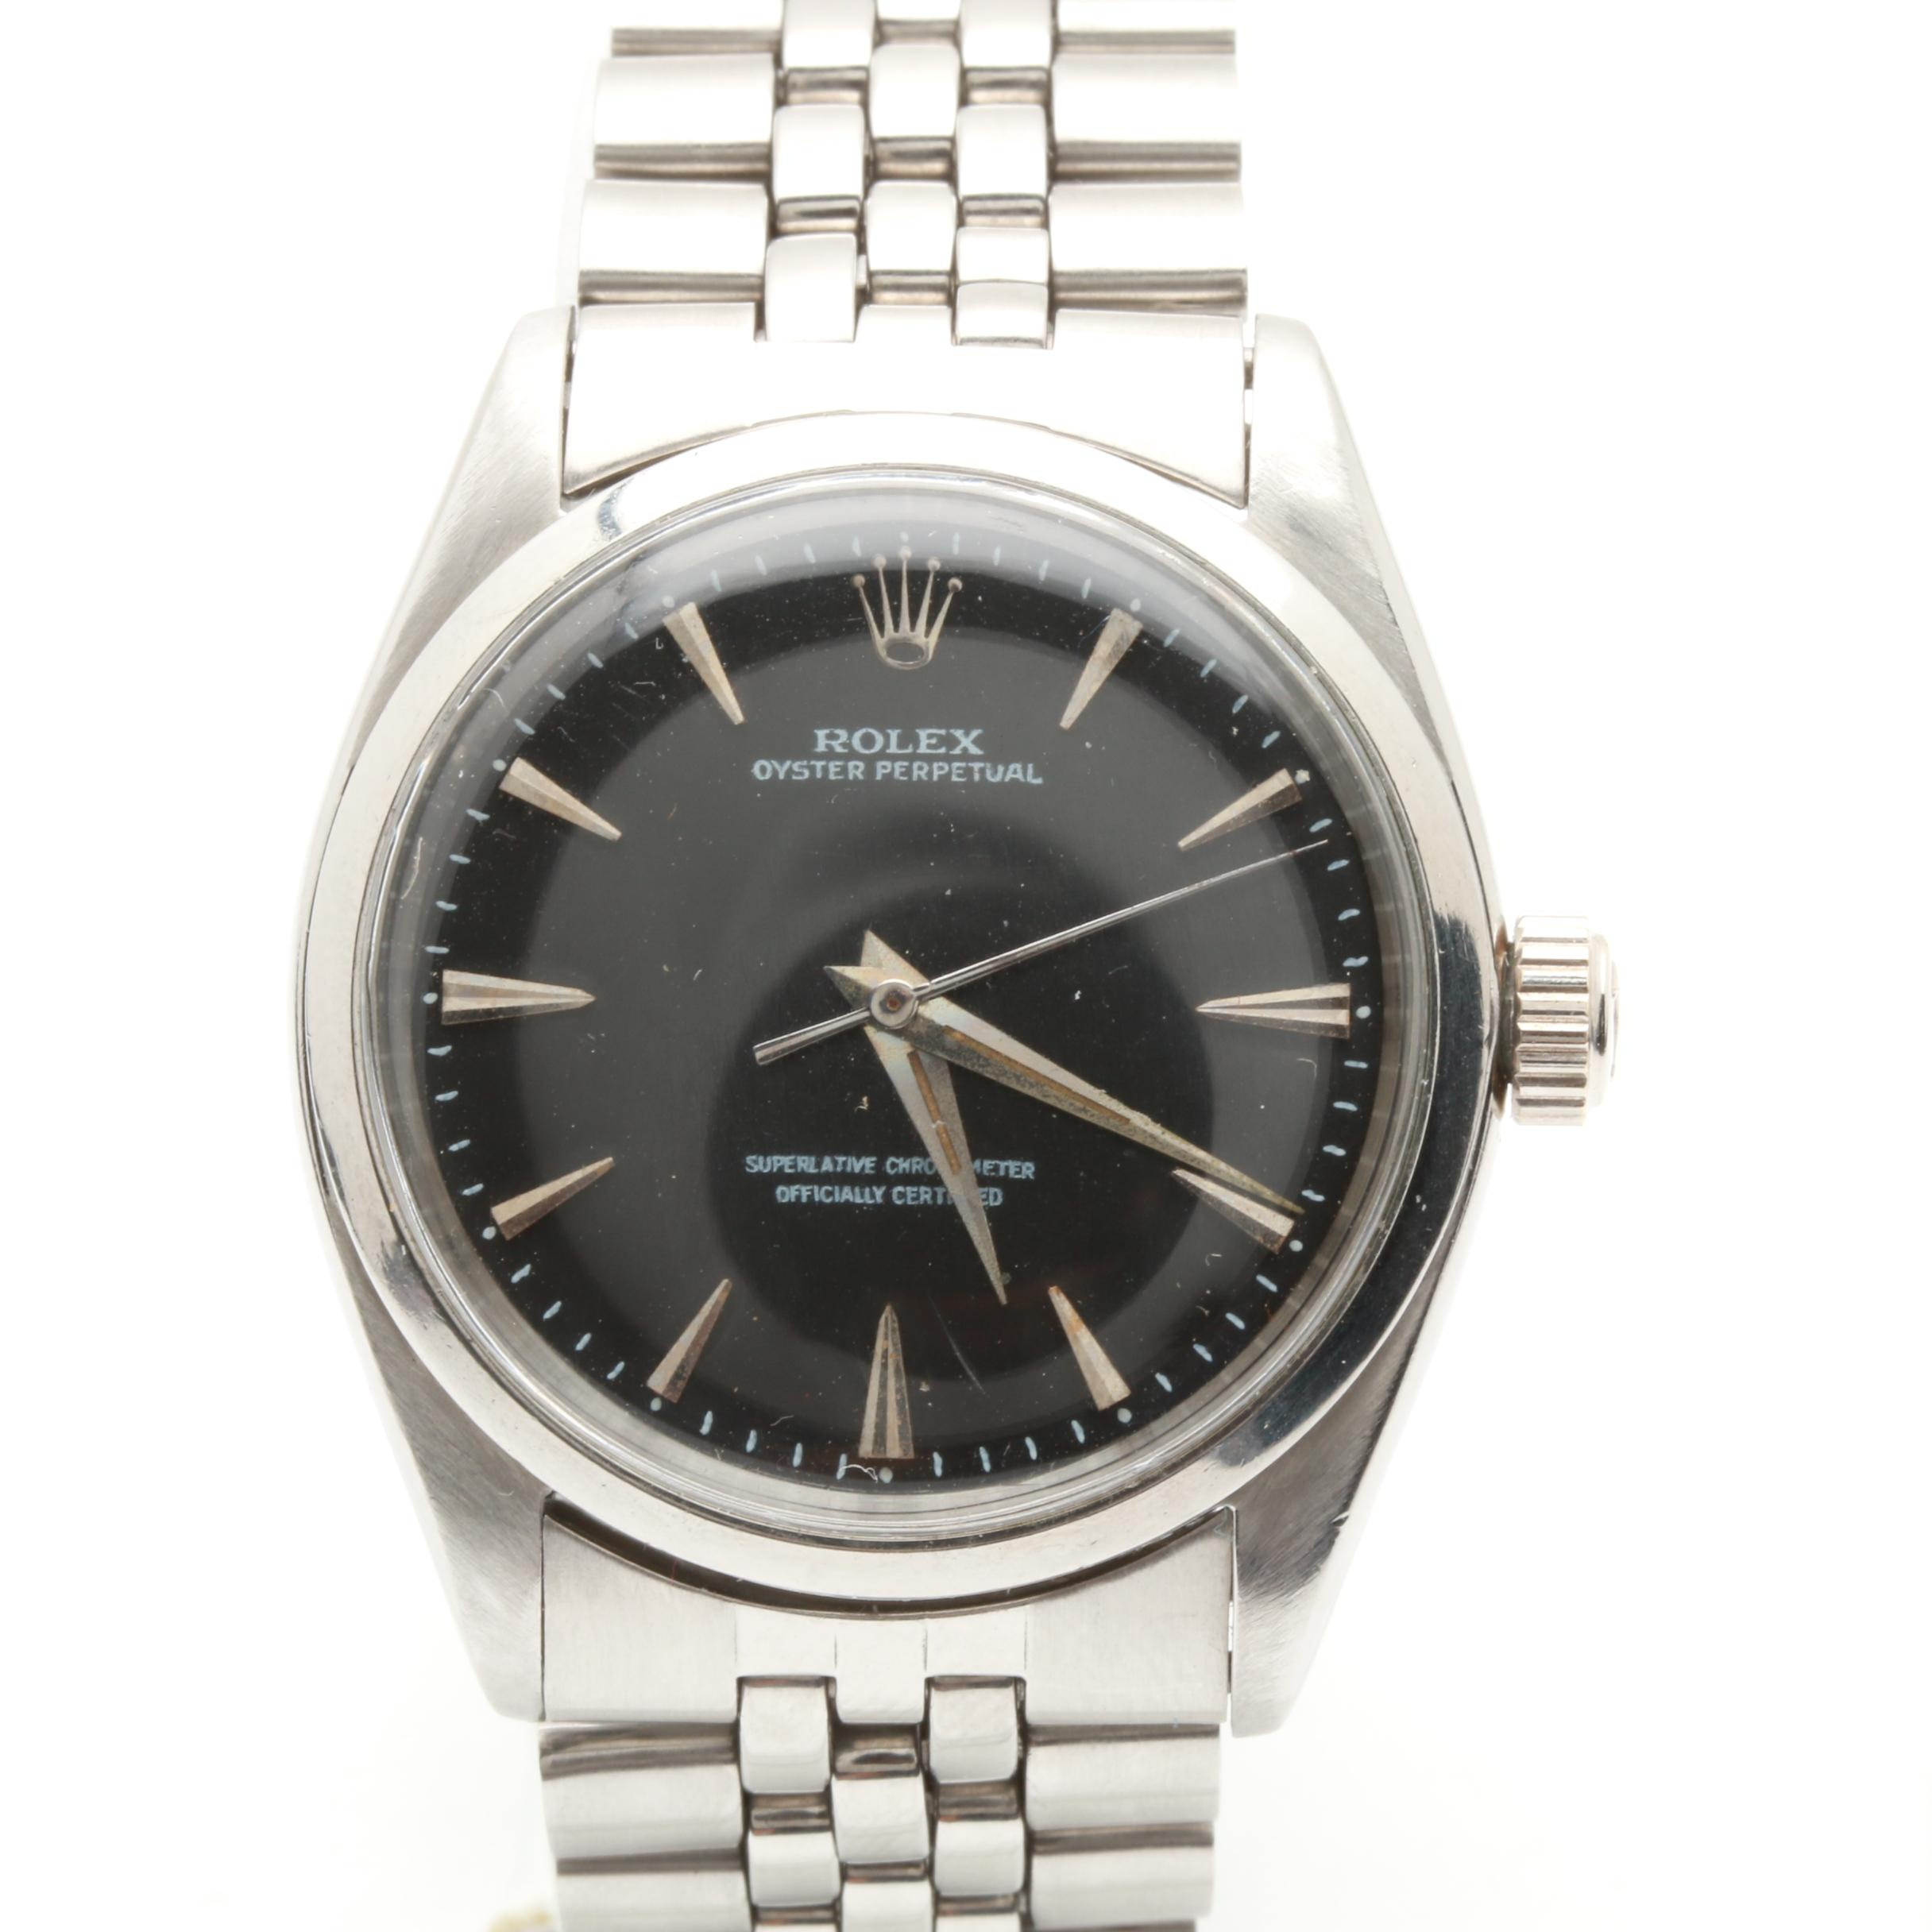 Rolex Oyster Perpetual Stainless Steel Wristwatch